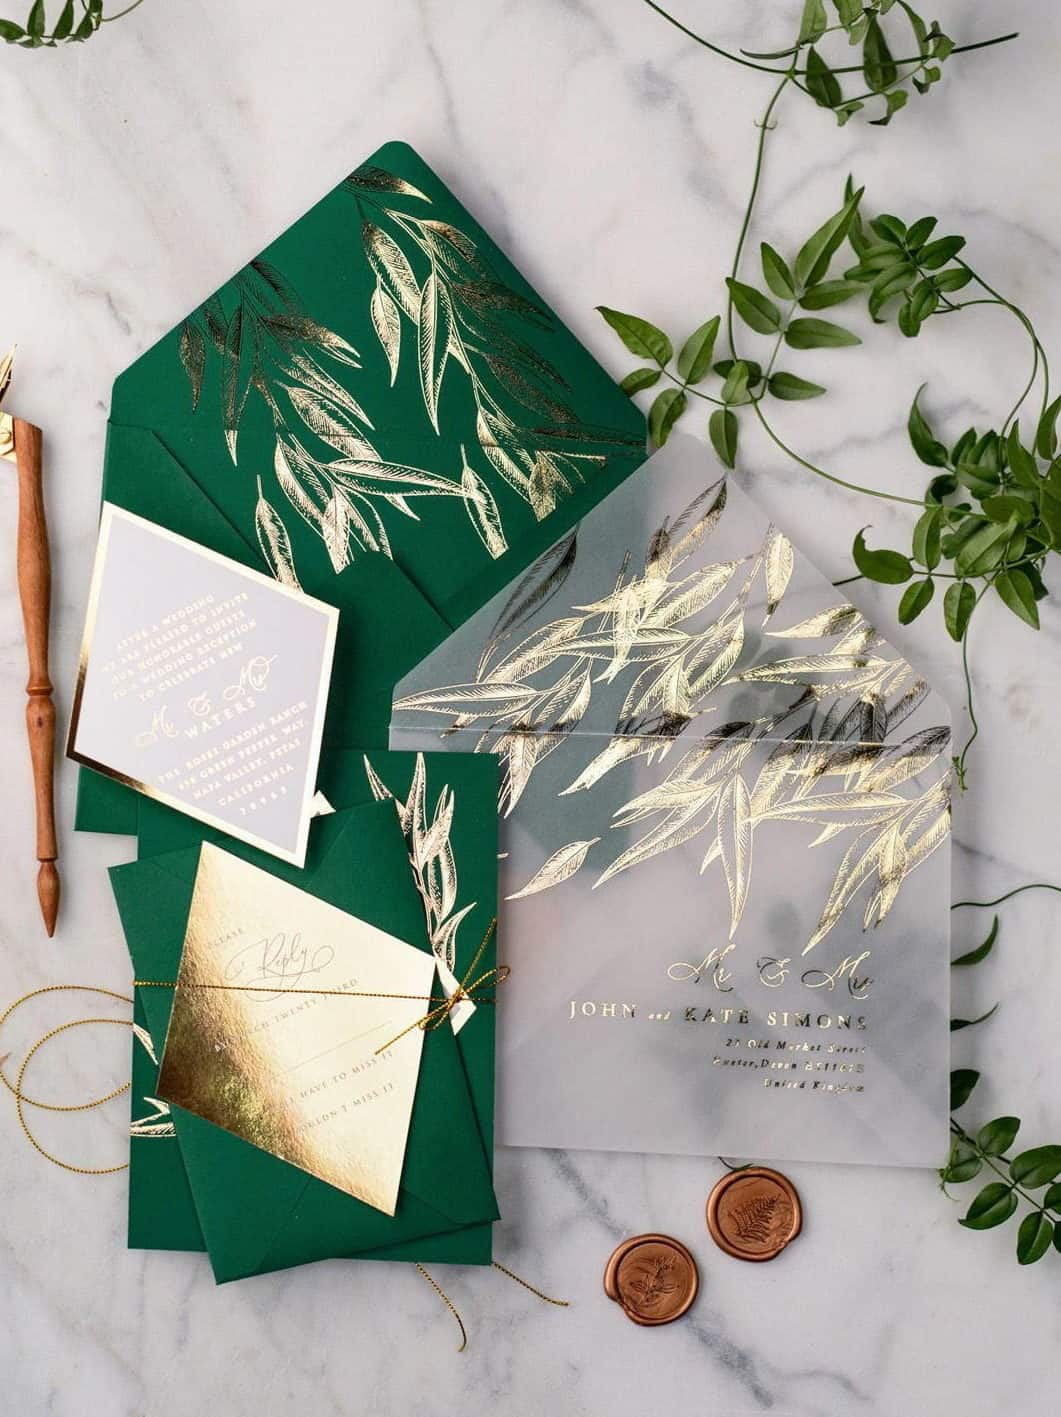 wedding invitation in green and gold foil with transparent envelope